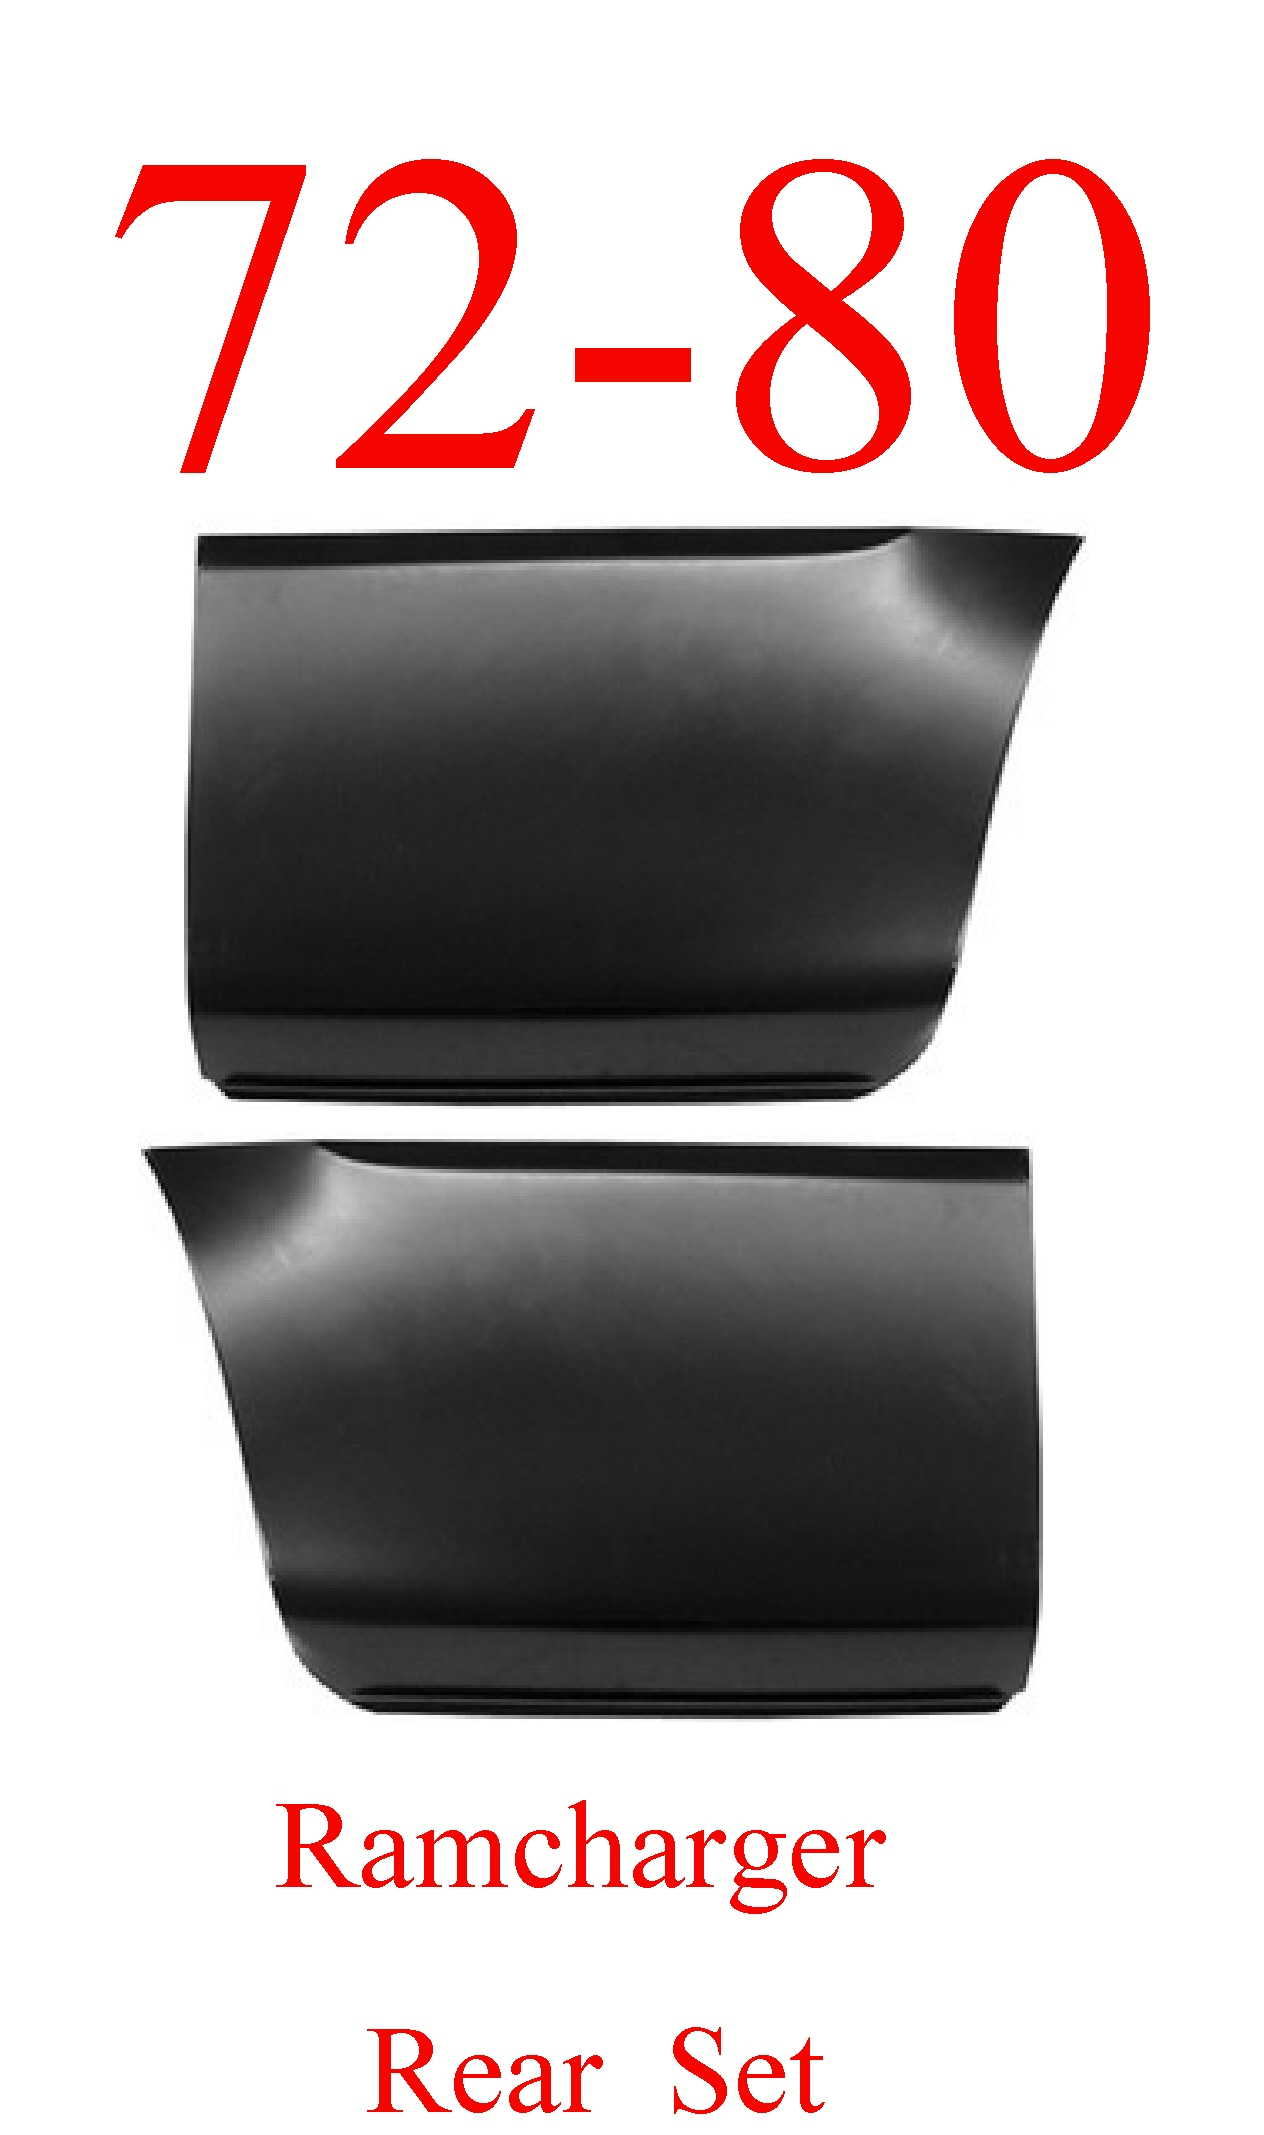 72-80 Dodge Ramcharger Rear Lower Bed Panel Set